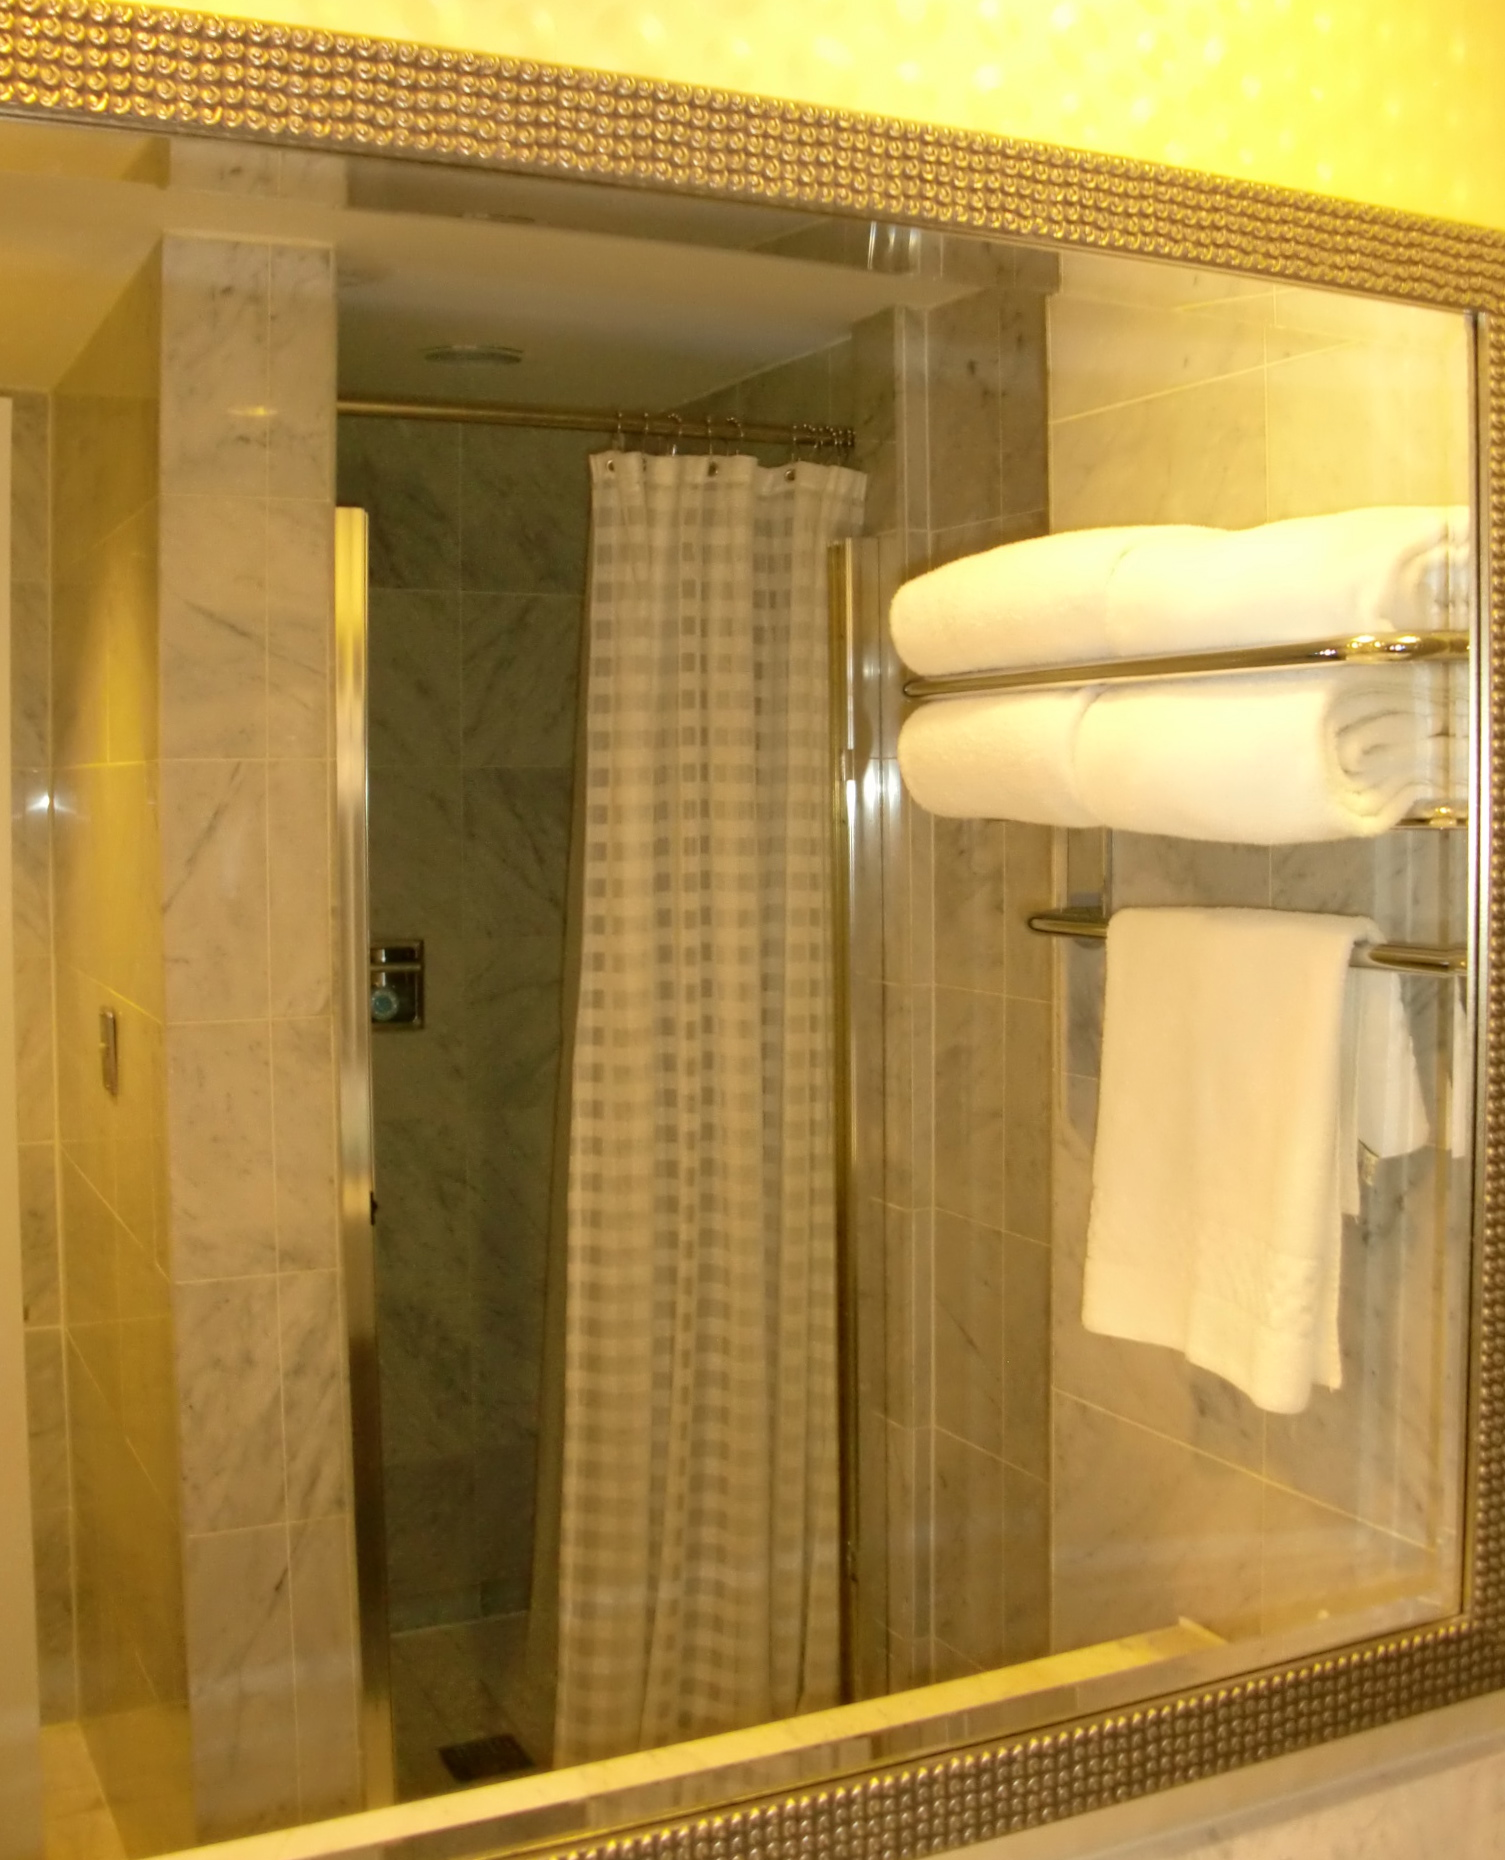 Kitchen Cabinets With Curtains Instead Of Doors: Shower Curtain Instead Of Glass Doors